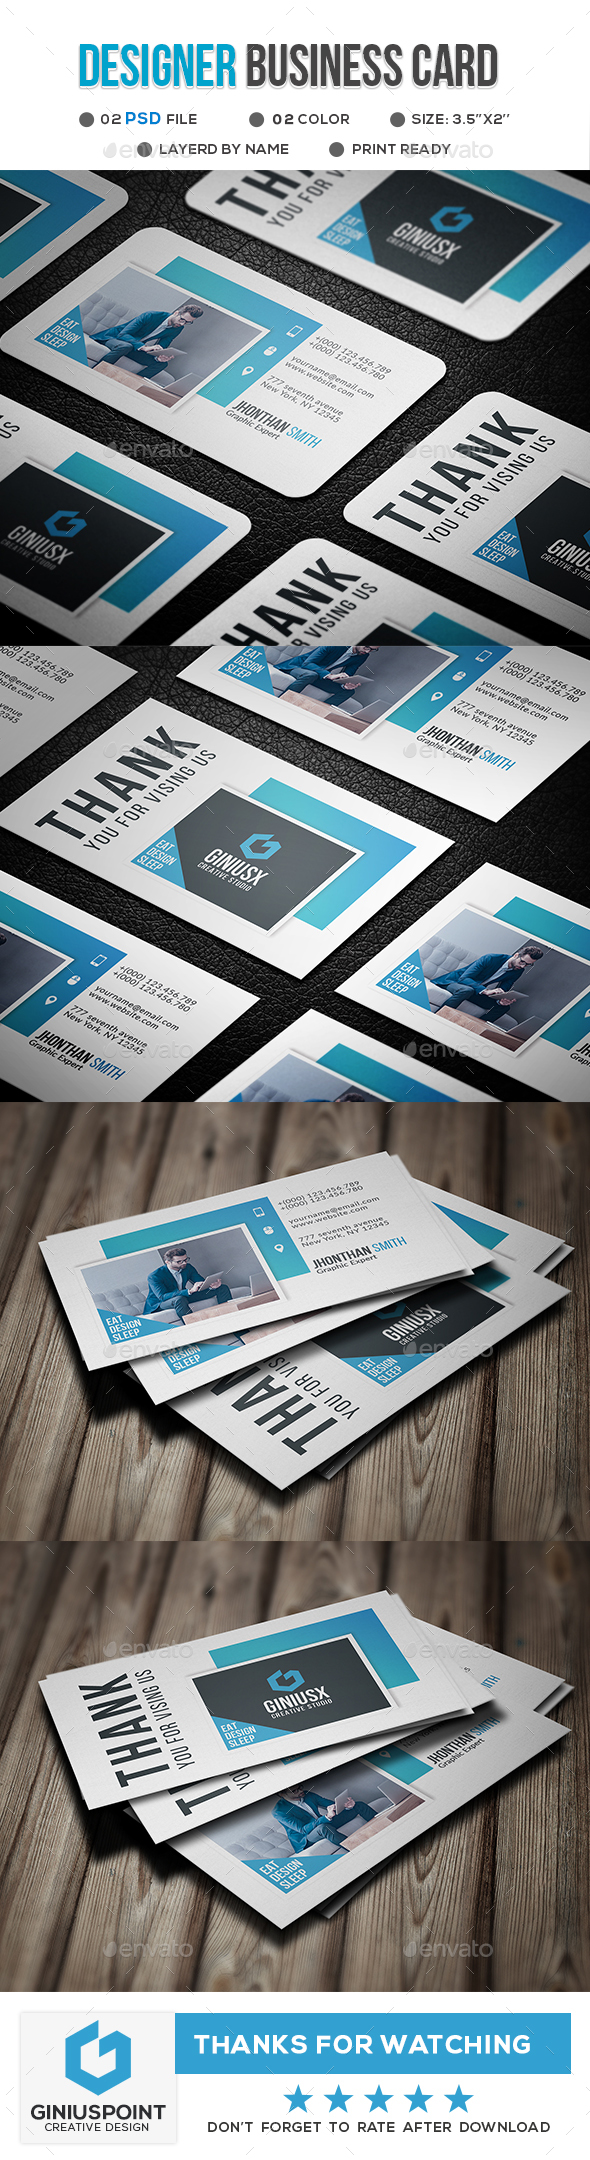 Designer Business Card - Business Cards Print Templates